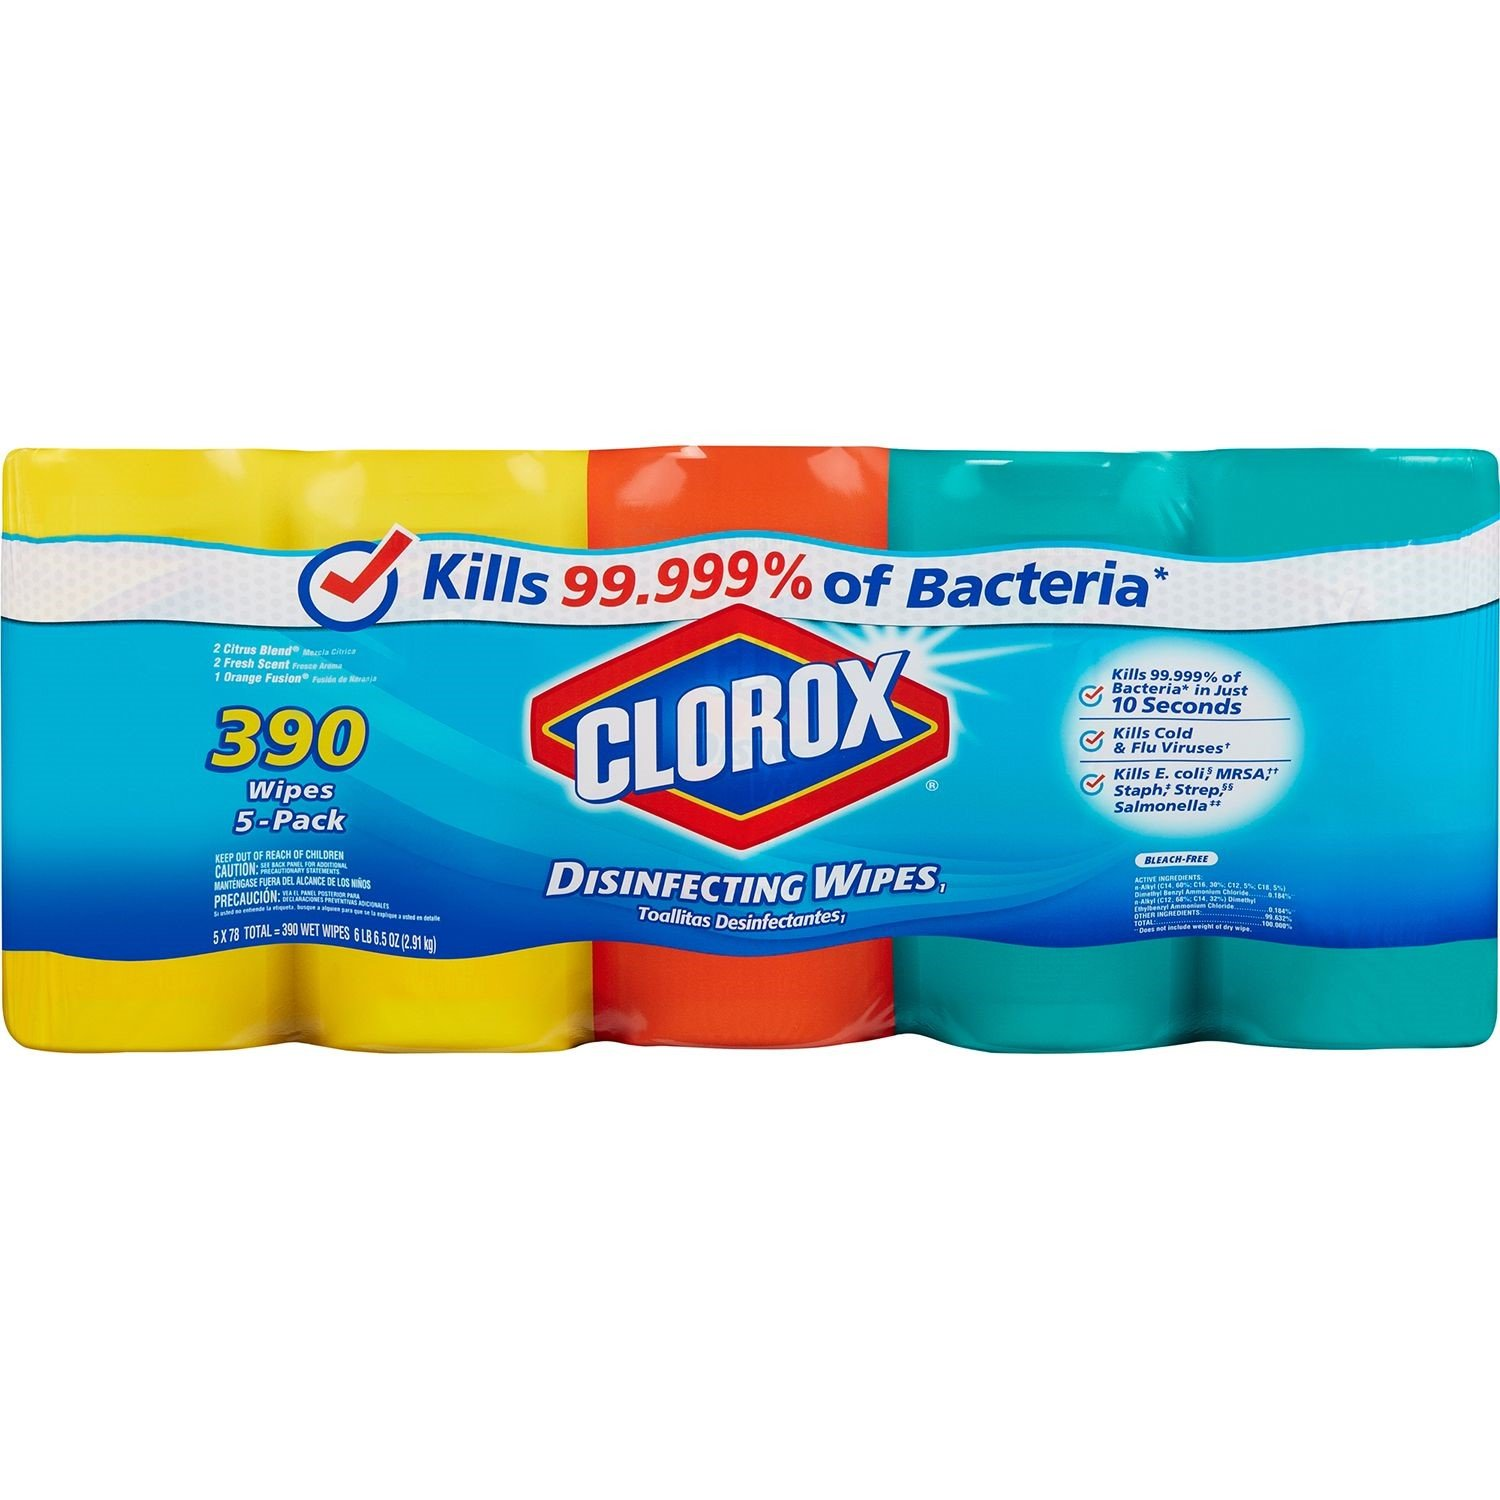 Clorox Disinfecting Wipes Value Pack, Citrus blend; Fresh Scent; Orange Fusion, 390 Wipes by Clorox